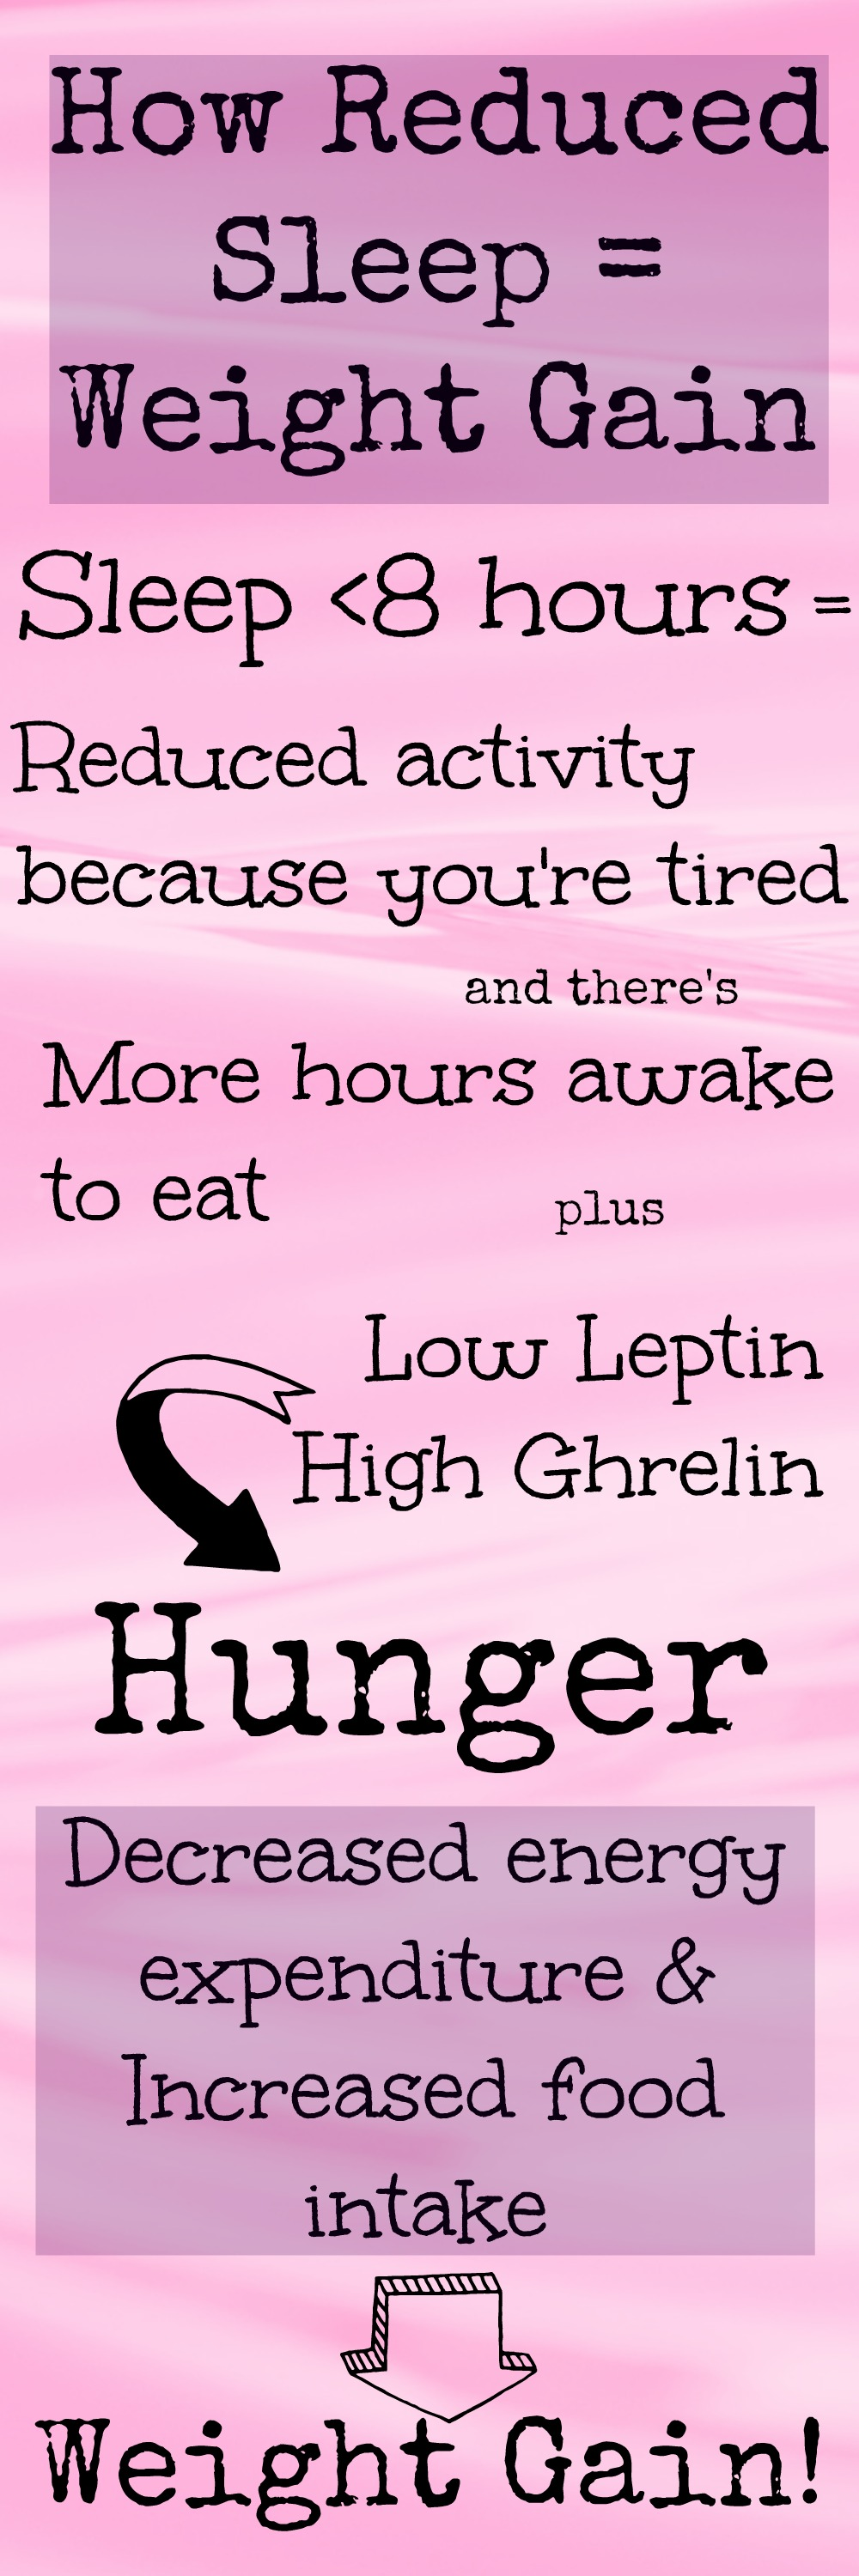 sleep and weight gain